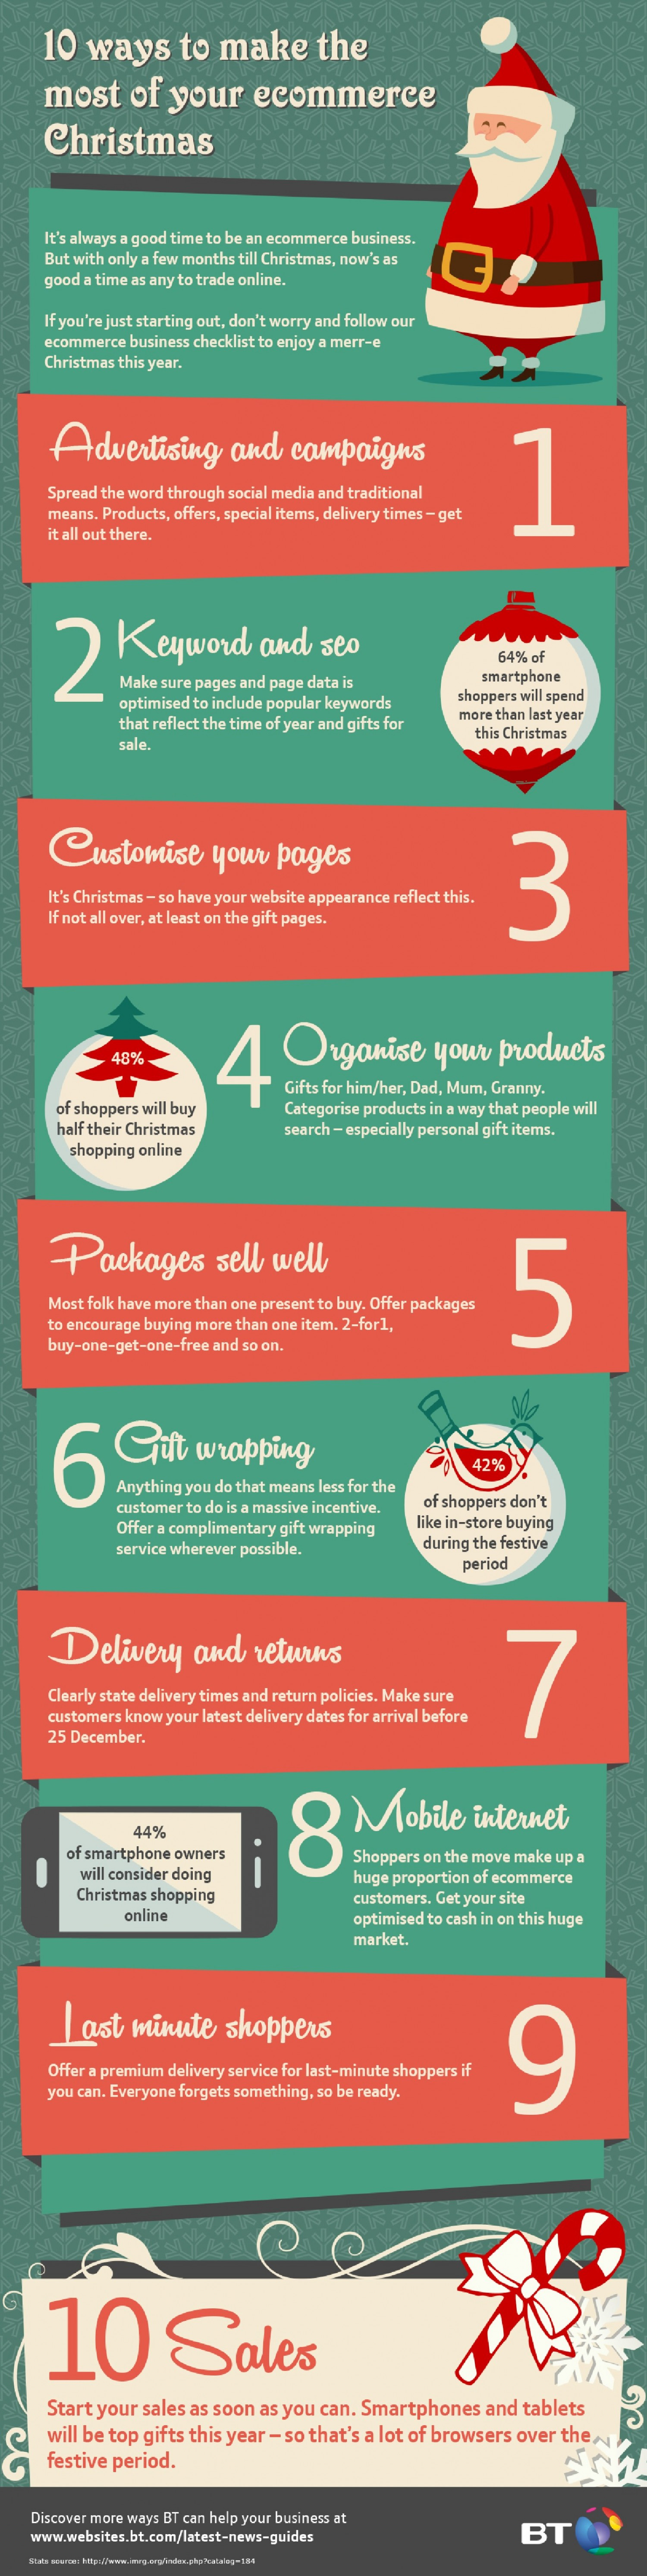 10 Ways To Make The Most Of Your eCommerce Christmas